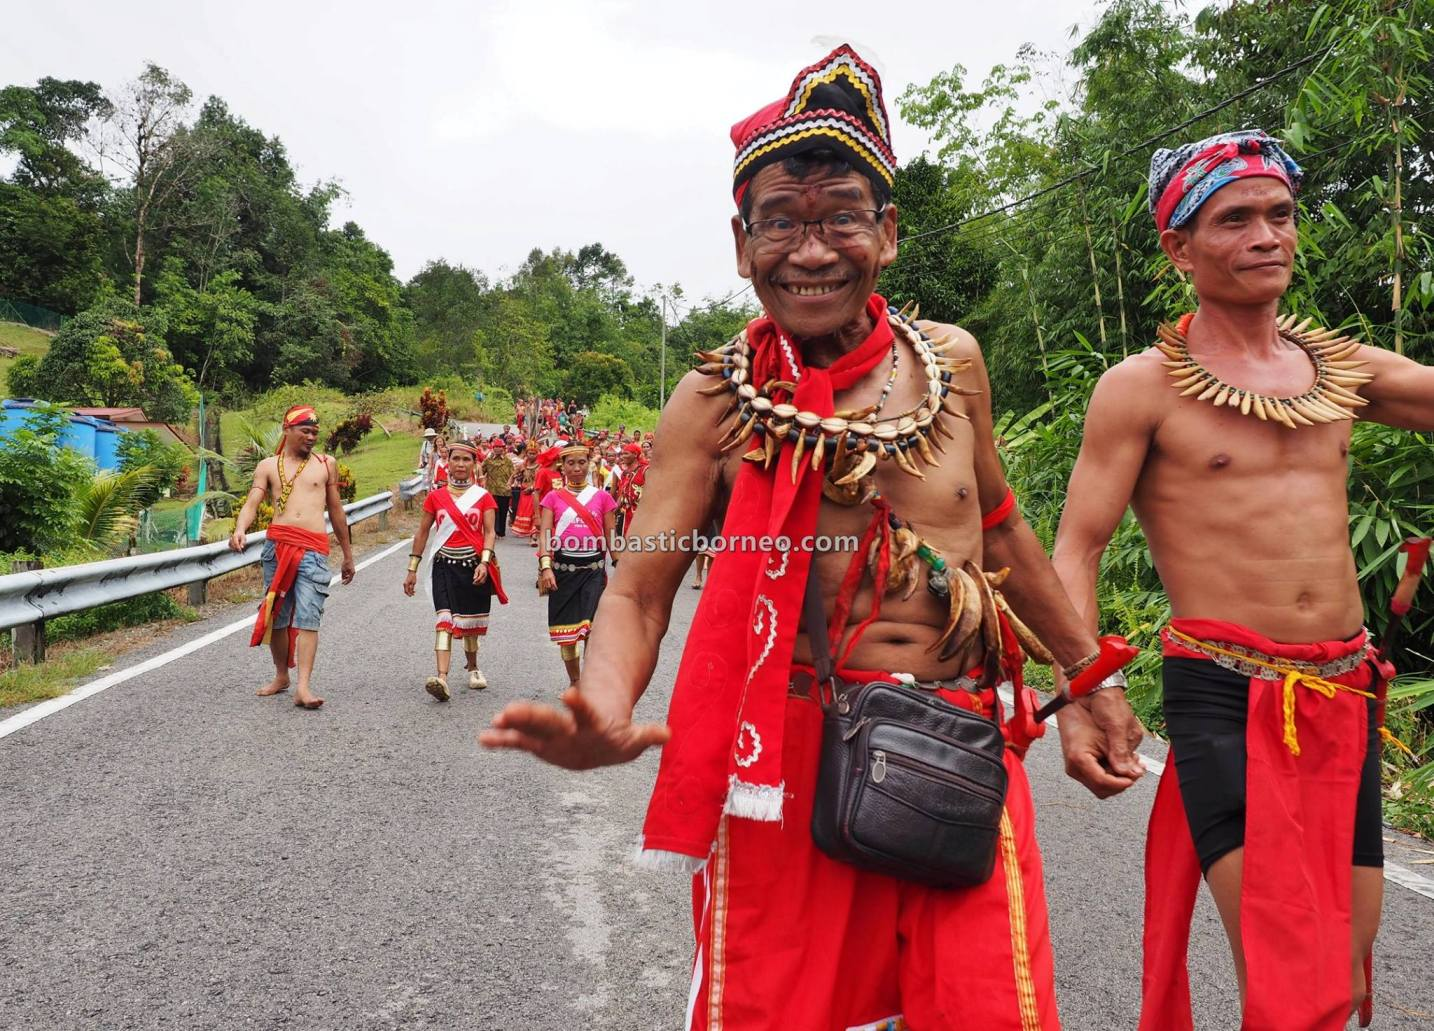 Kampung Gumbang, Gawai Serumpun, Dayak Bidayuh, authentic, traditional, Bau, Kuching, Malaysia, budaya, Ethnic, native, Tourism, 砂拉越达雅丰收节日, 传统比达友族文化, Sungkung Medeng